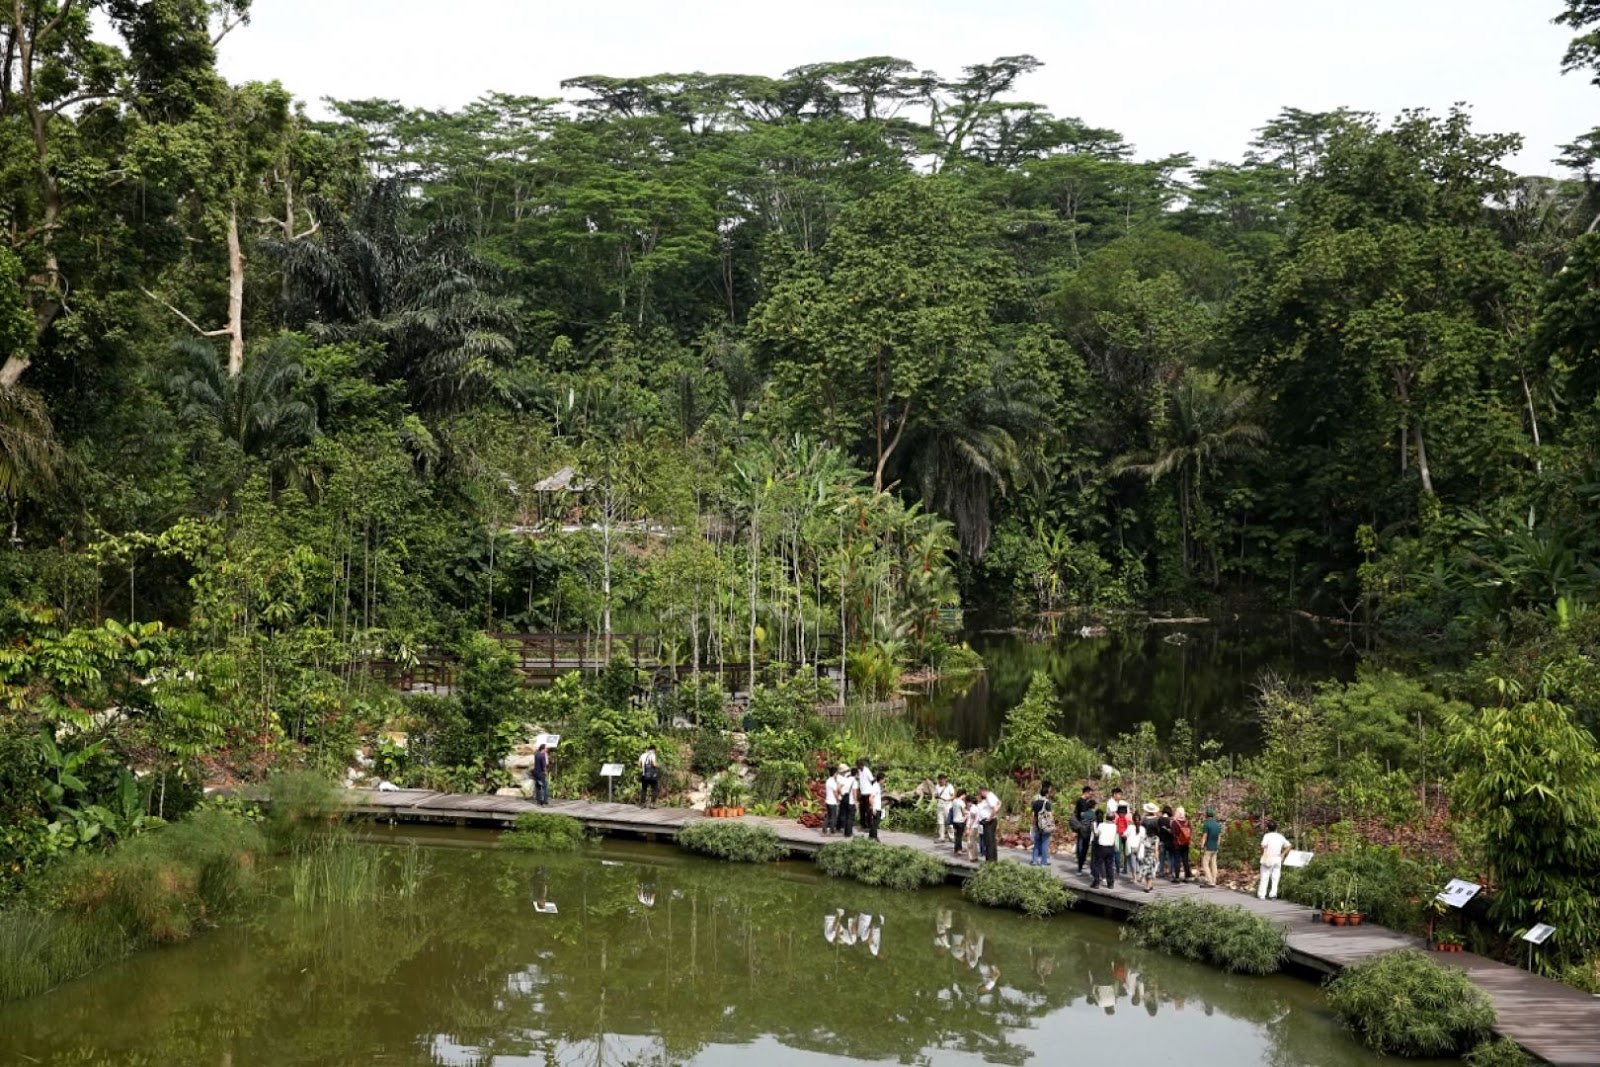 People tour the Botanists' Boardwalk at the Keppel Discovery Wetlands